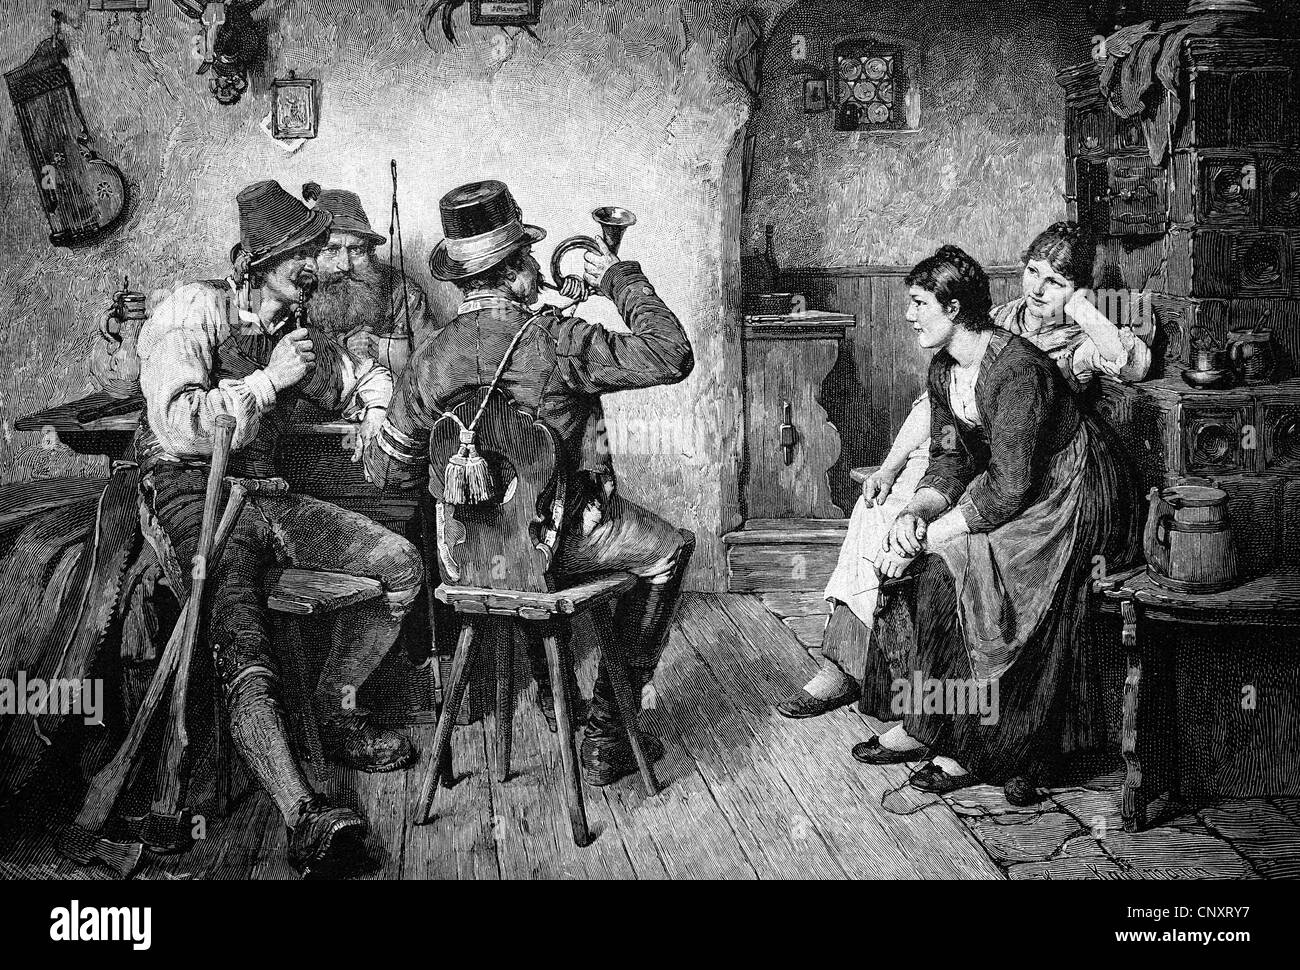 Man blowing a hunter's horn in an inn, historic engraving, 1888 - Stock Image